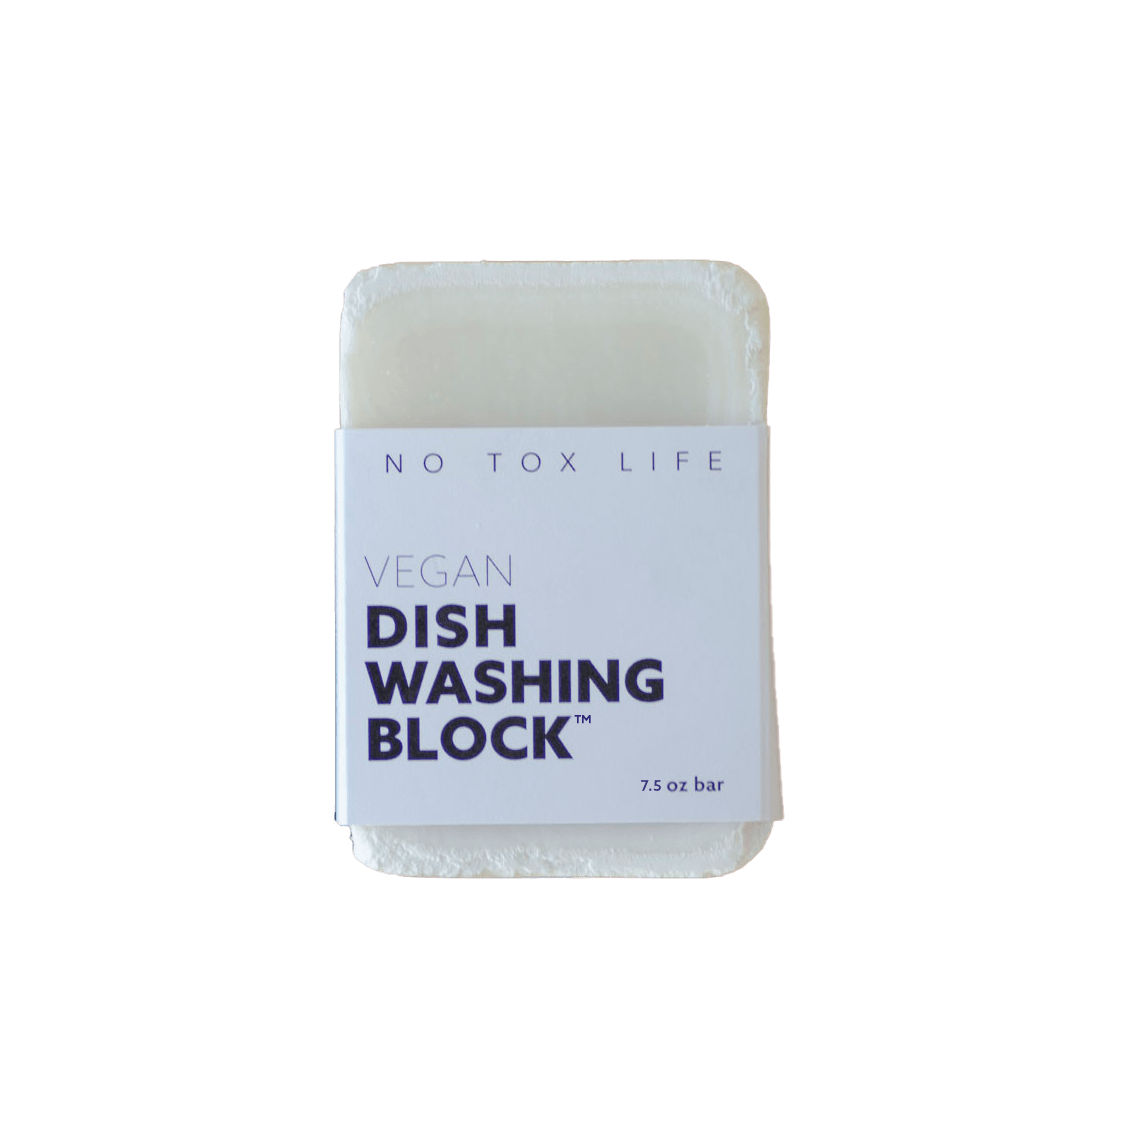 Zero Waste Dish Washing Block - Naturally Anti-Microbial Hypoallergenic Sustainable Eco-Friendly Cork